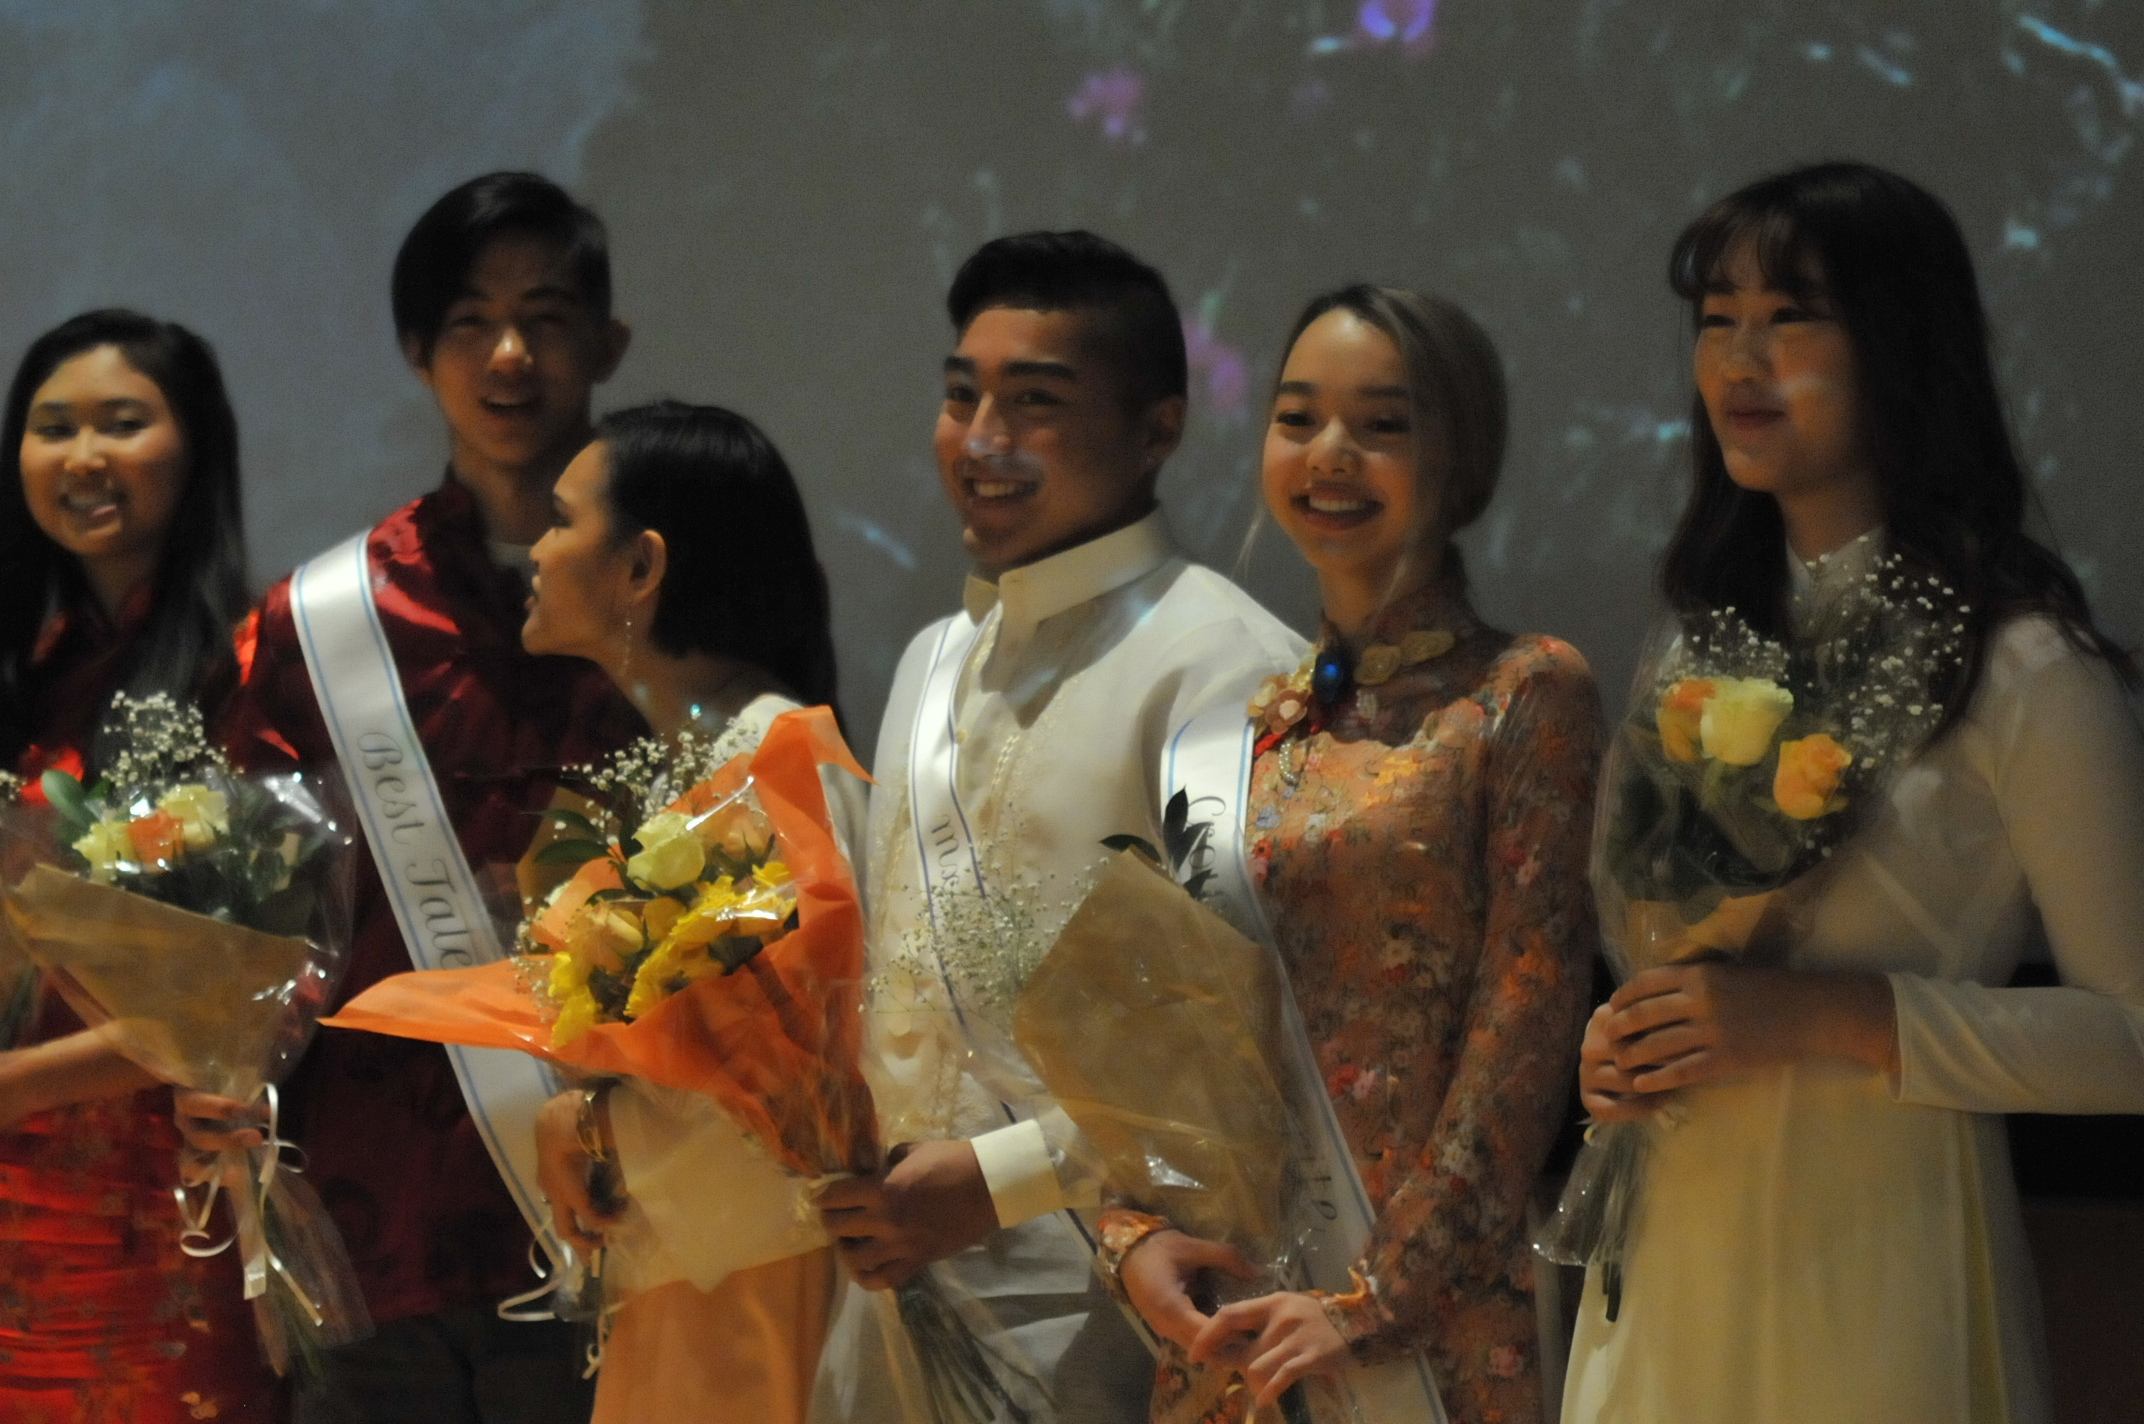 The Mx. Asia Pageant's emphasis on inclusion and celebrating aspects of Asian-American identities led to a great event that is sure to continue to impress in years to come. (Hanaisha Lewis/The Daily Campus)